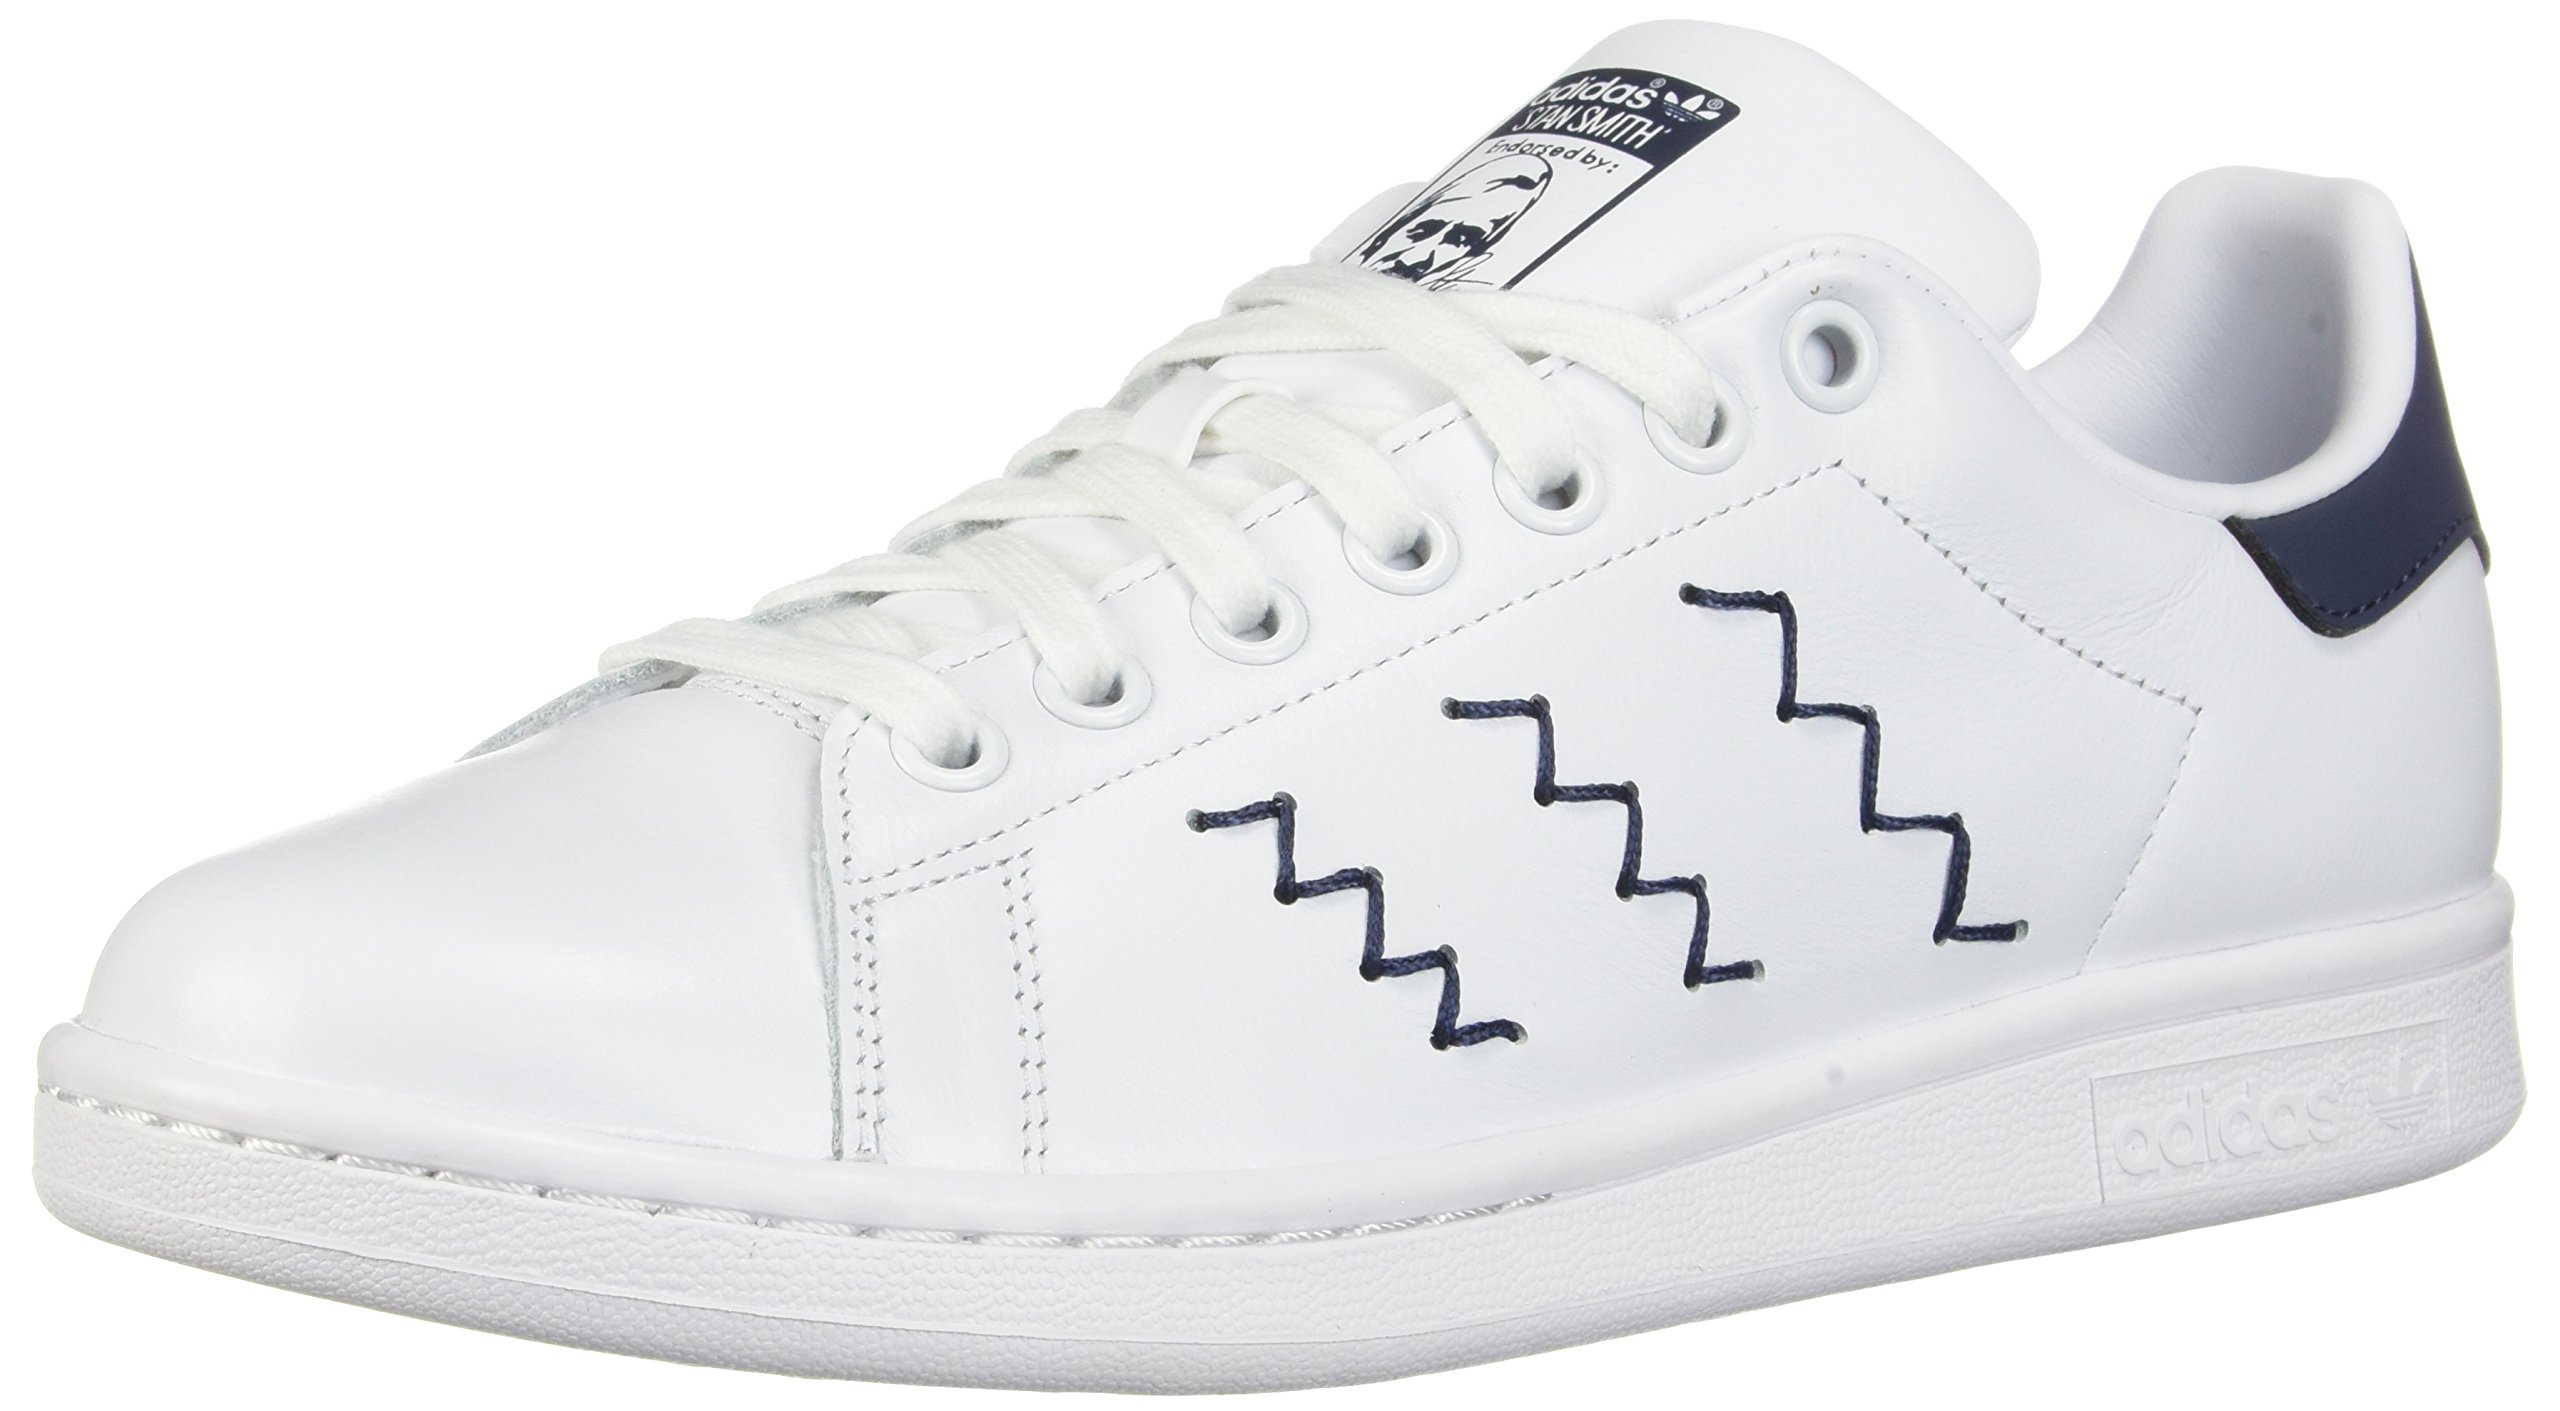 new style 6082a 4fff6 adidas Originals Women's Stan Smith W Fashion Sneaker Running Shoe,  White/Trace Blue, 5 Medium US